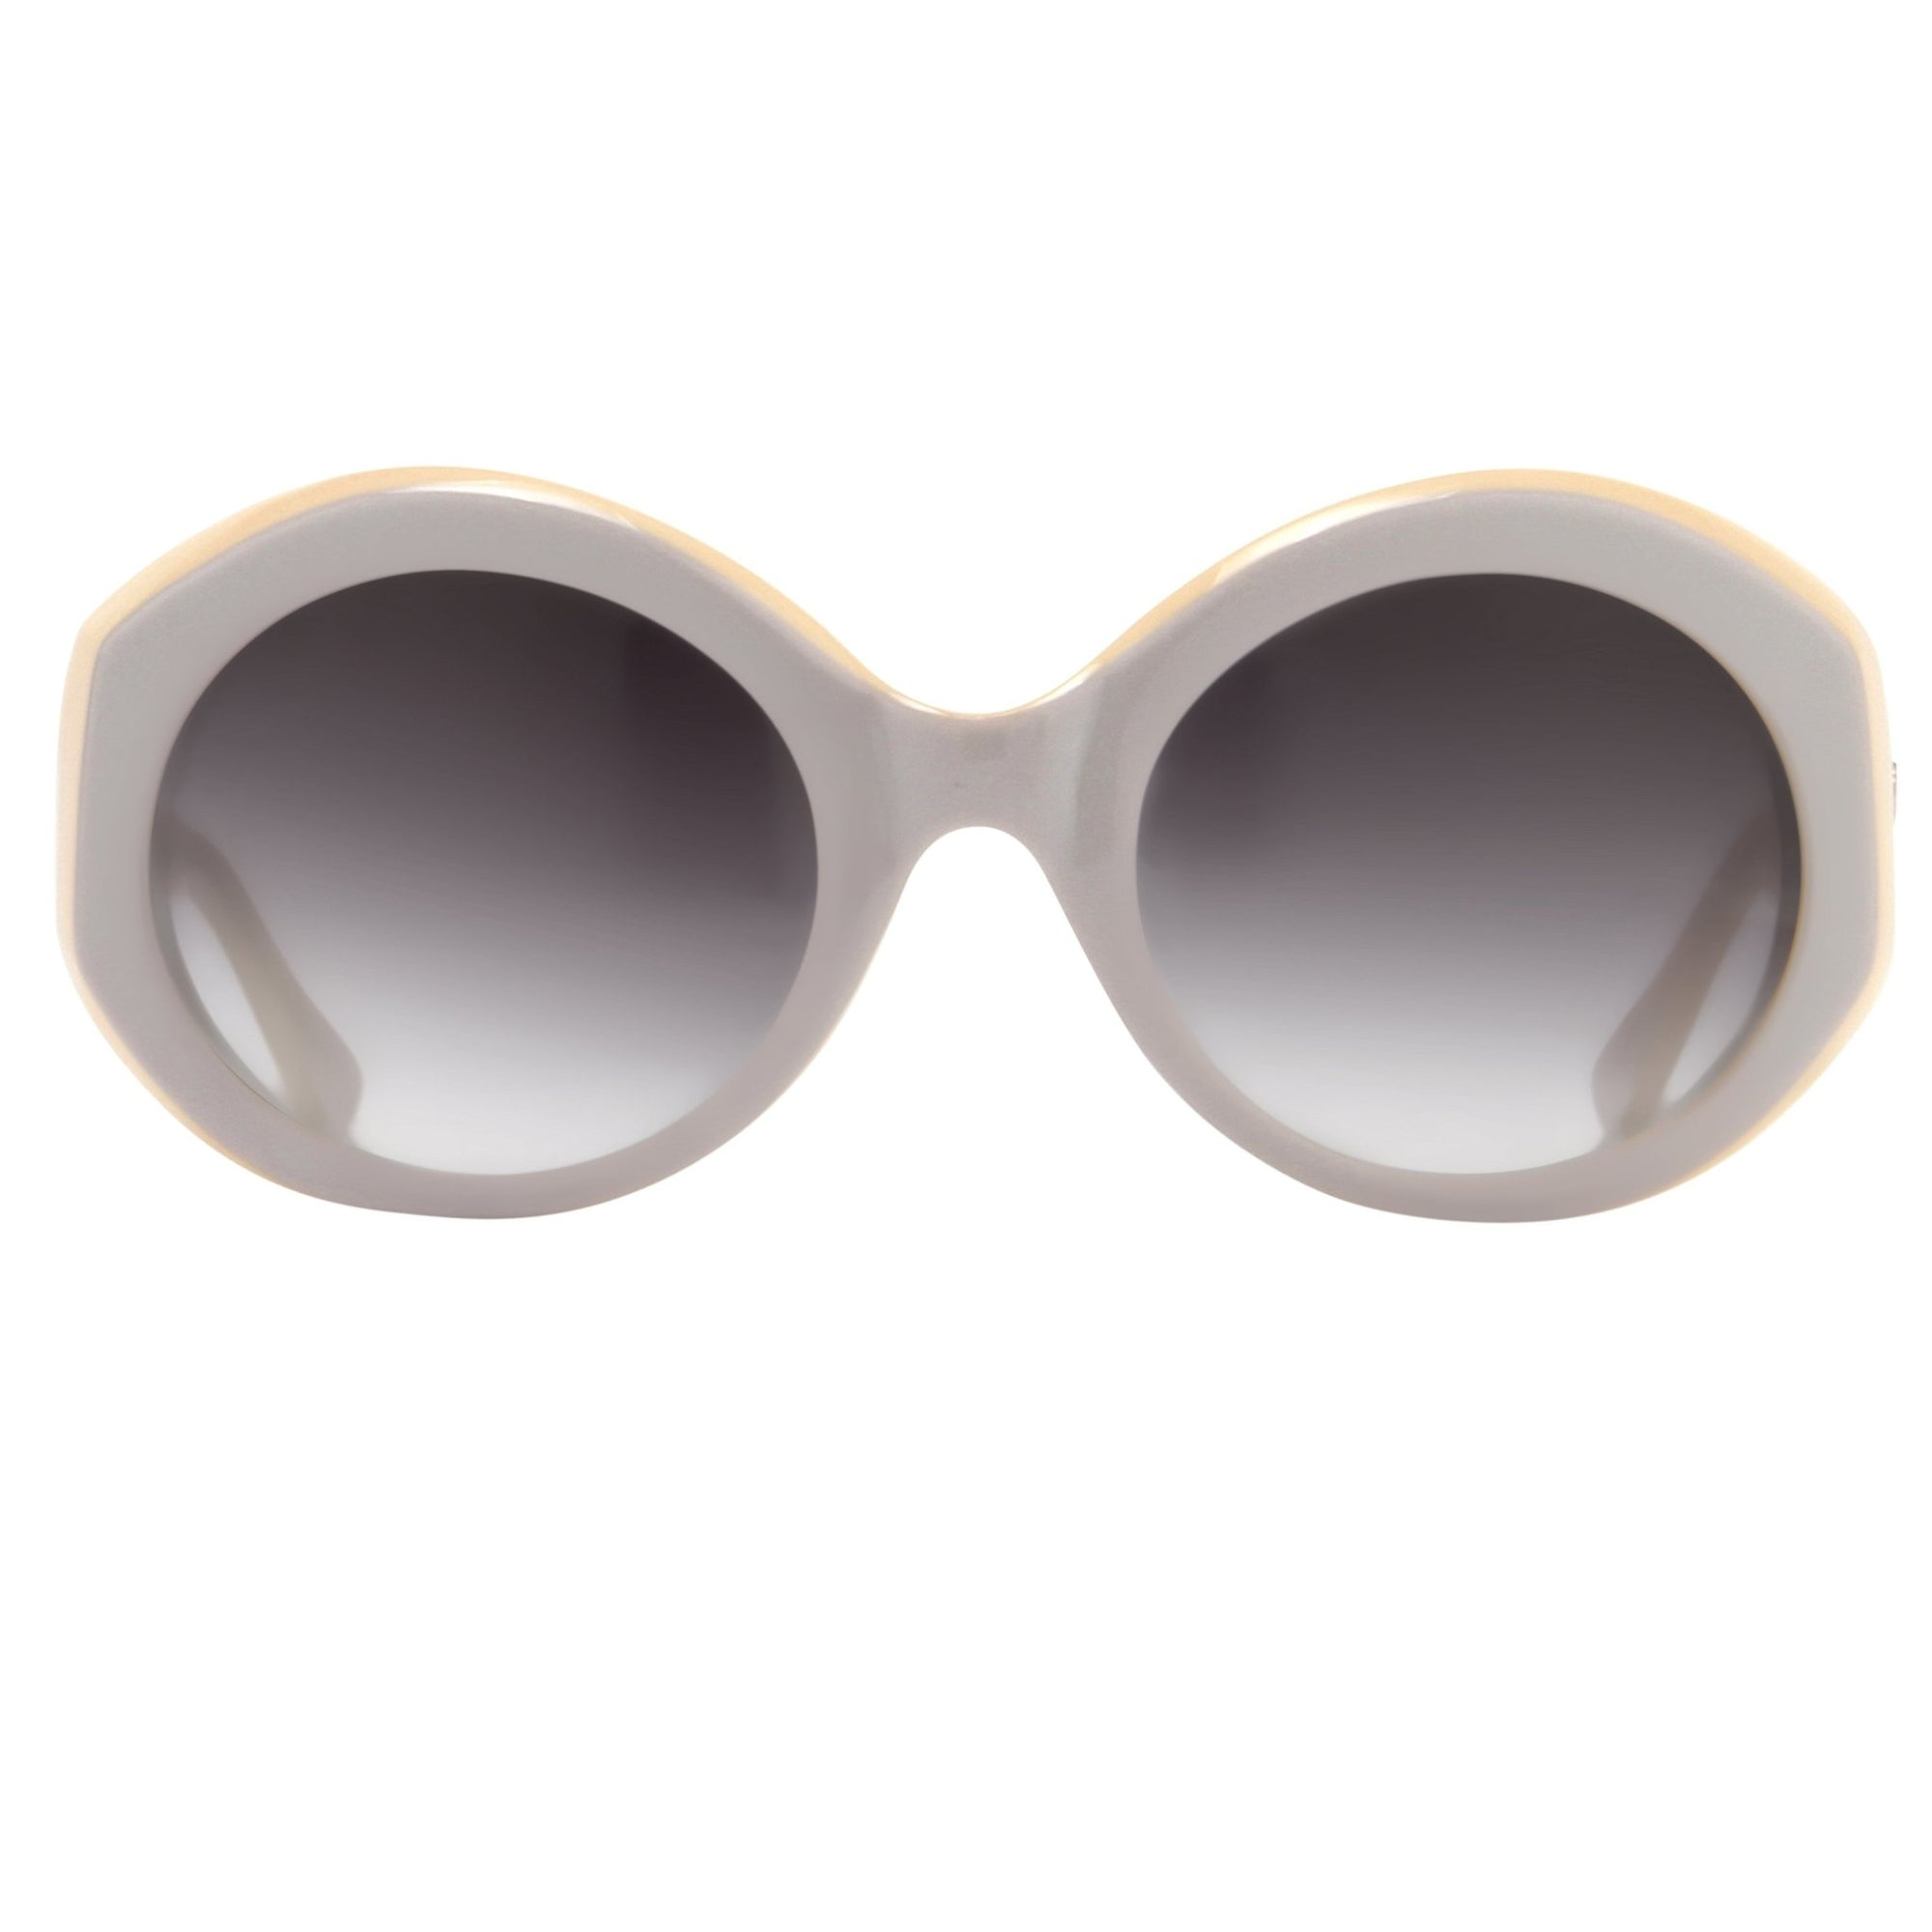 Agent Provocateur Sunglasses Round Grey/Yellow and Grey Lenses Category 3 - AP68C3SUN - Watches & Crystals